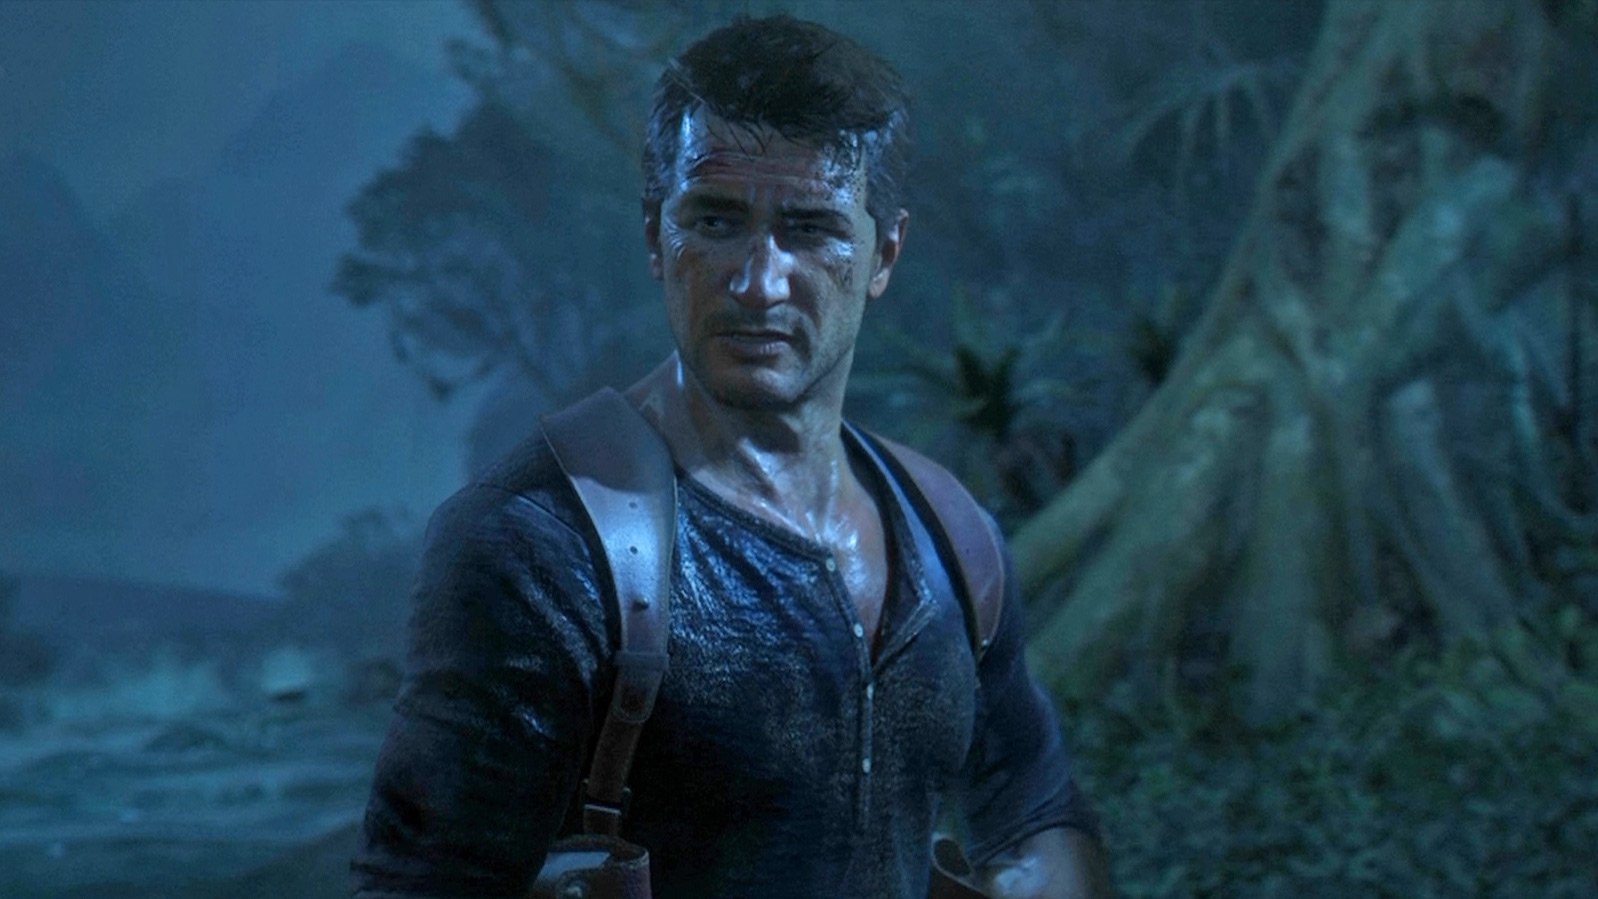 """Uncharted 4"" Delayed to Spring 2016 - Nathan Drake Will Have His Day Later"